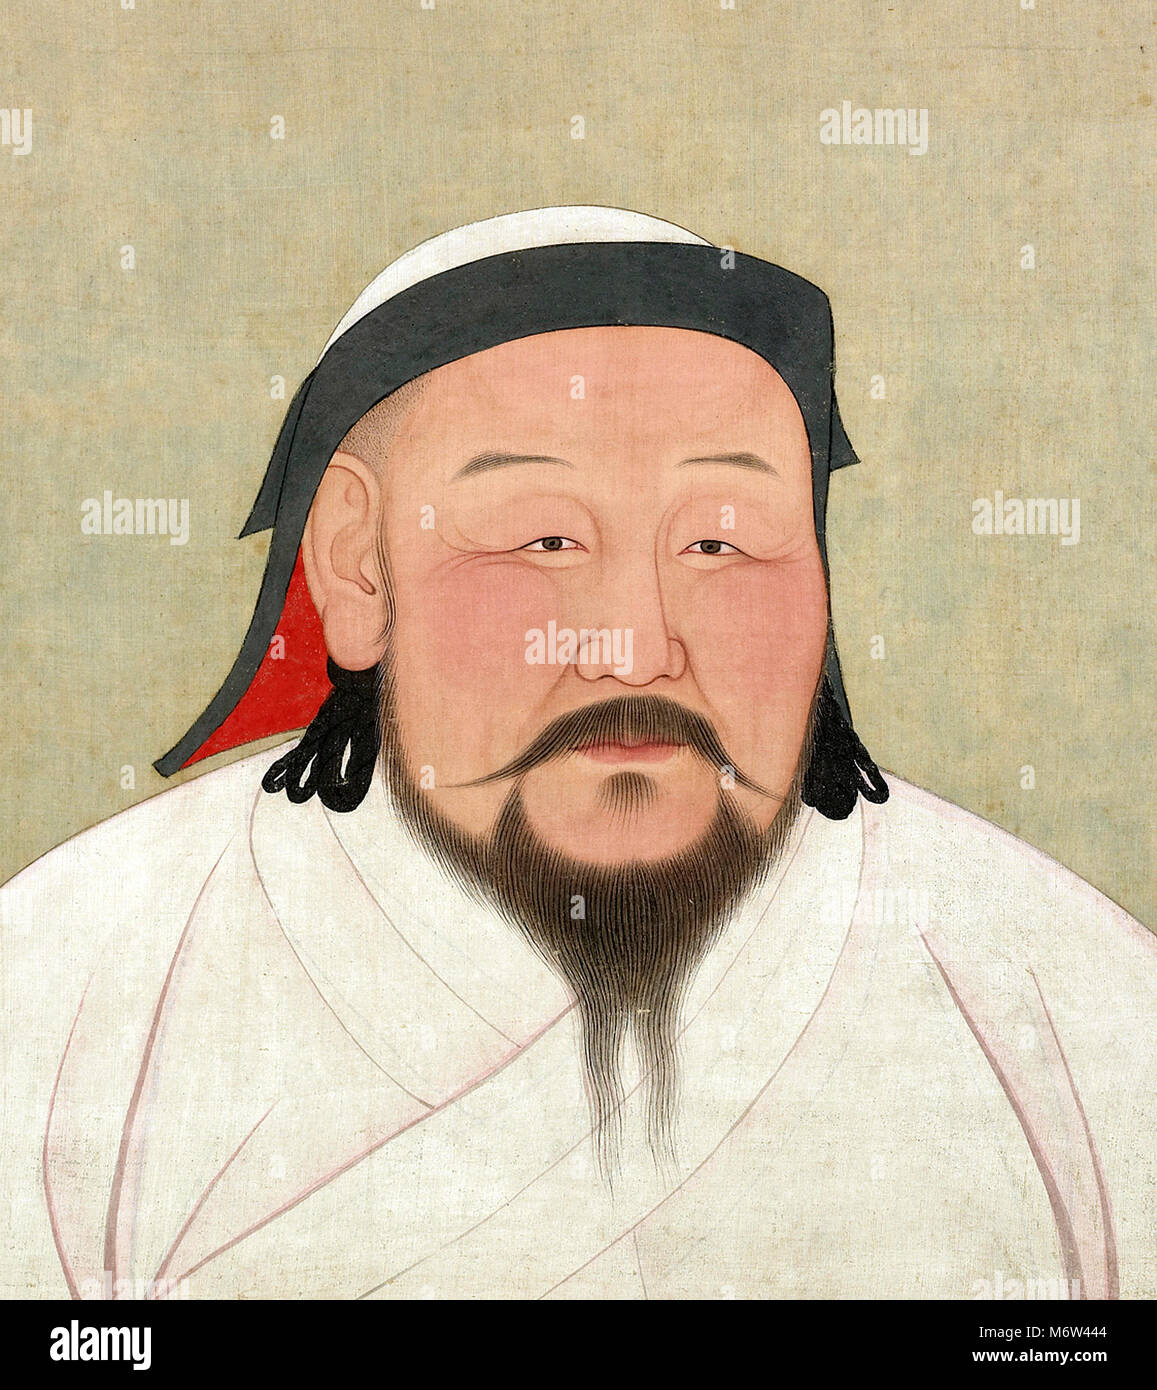 Kublai Khan (c.1215-1294), portrait of the fifth Khagan (Great Khan) of the Mongol Empire, paint and ink on silk, - Stock Image